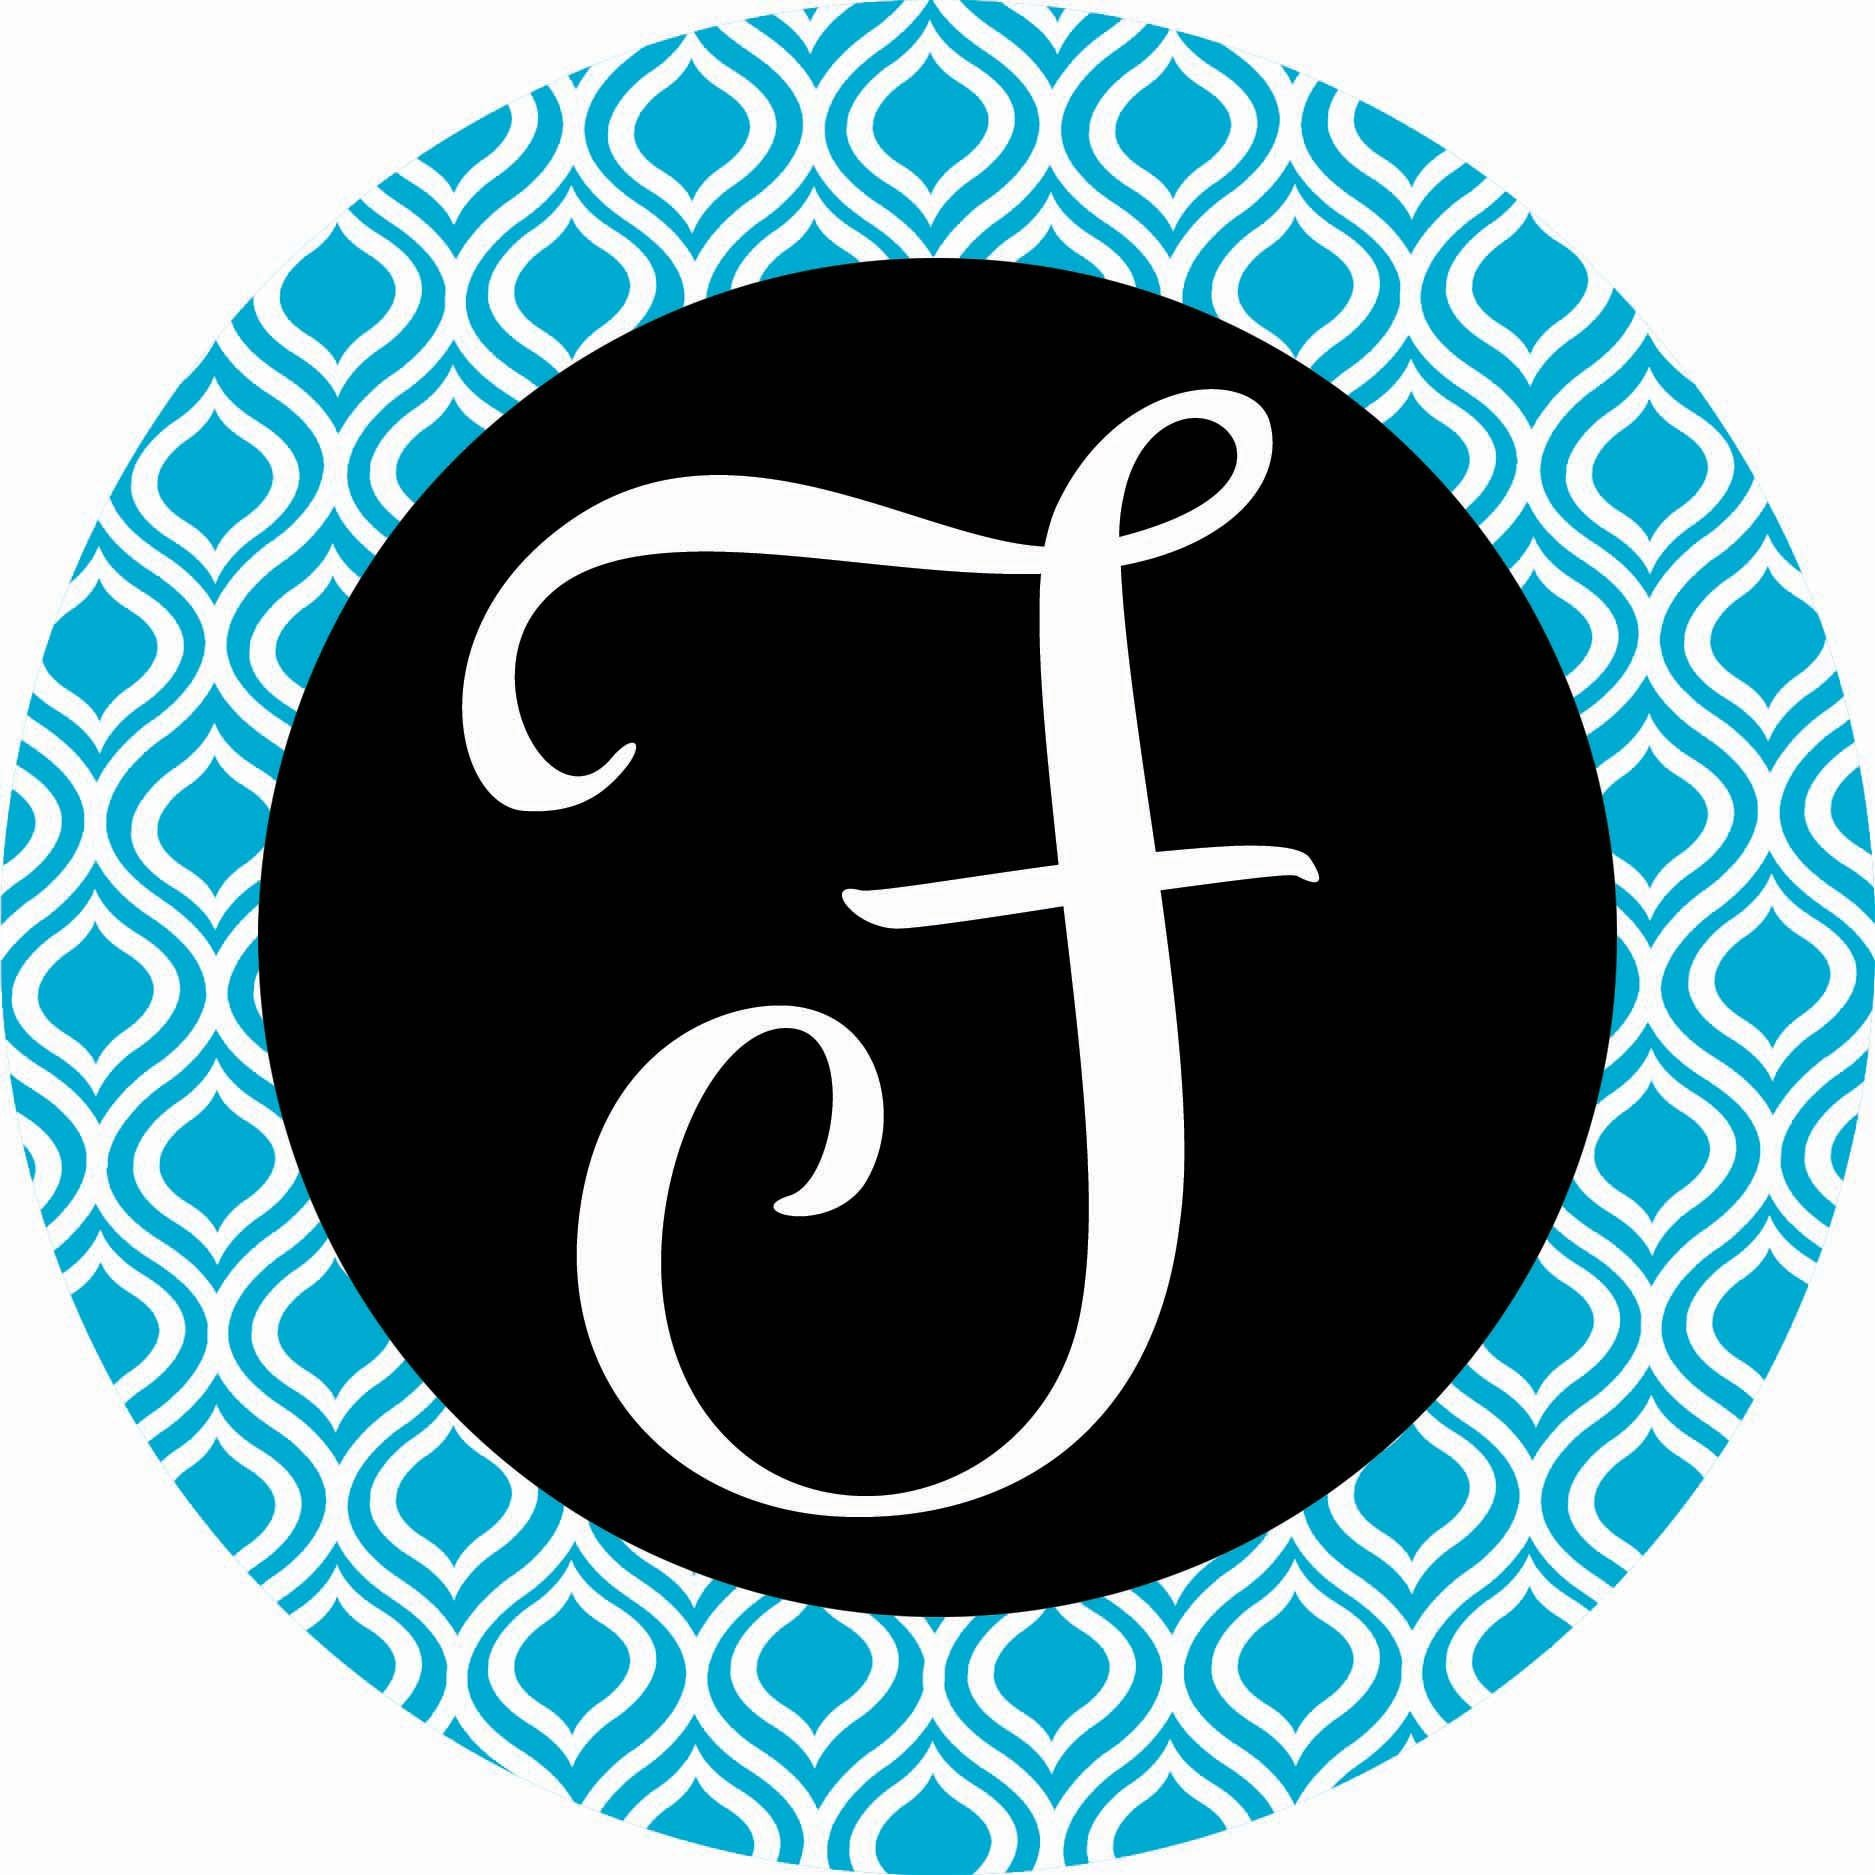 Accent Magnet-Whimsy-F-Monogram - Auto - Home - Kitchen -Yard -Six (6) Inch - Made in USA - Licensed , Copyrighted by Custom Decor Inc. by Custom Decor